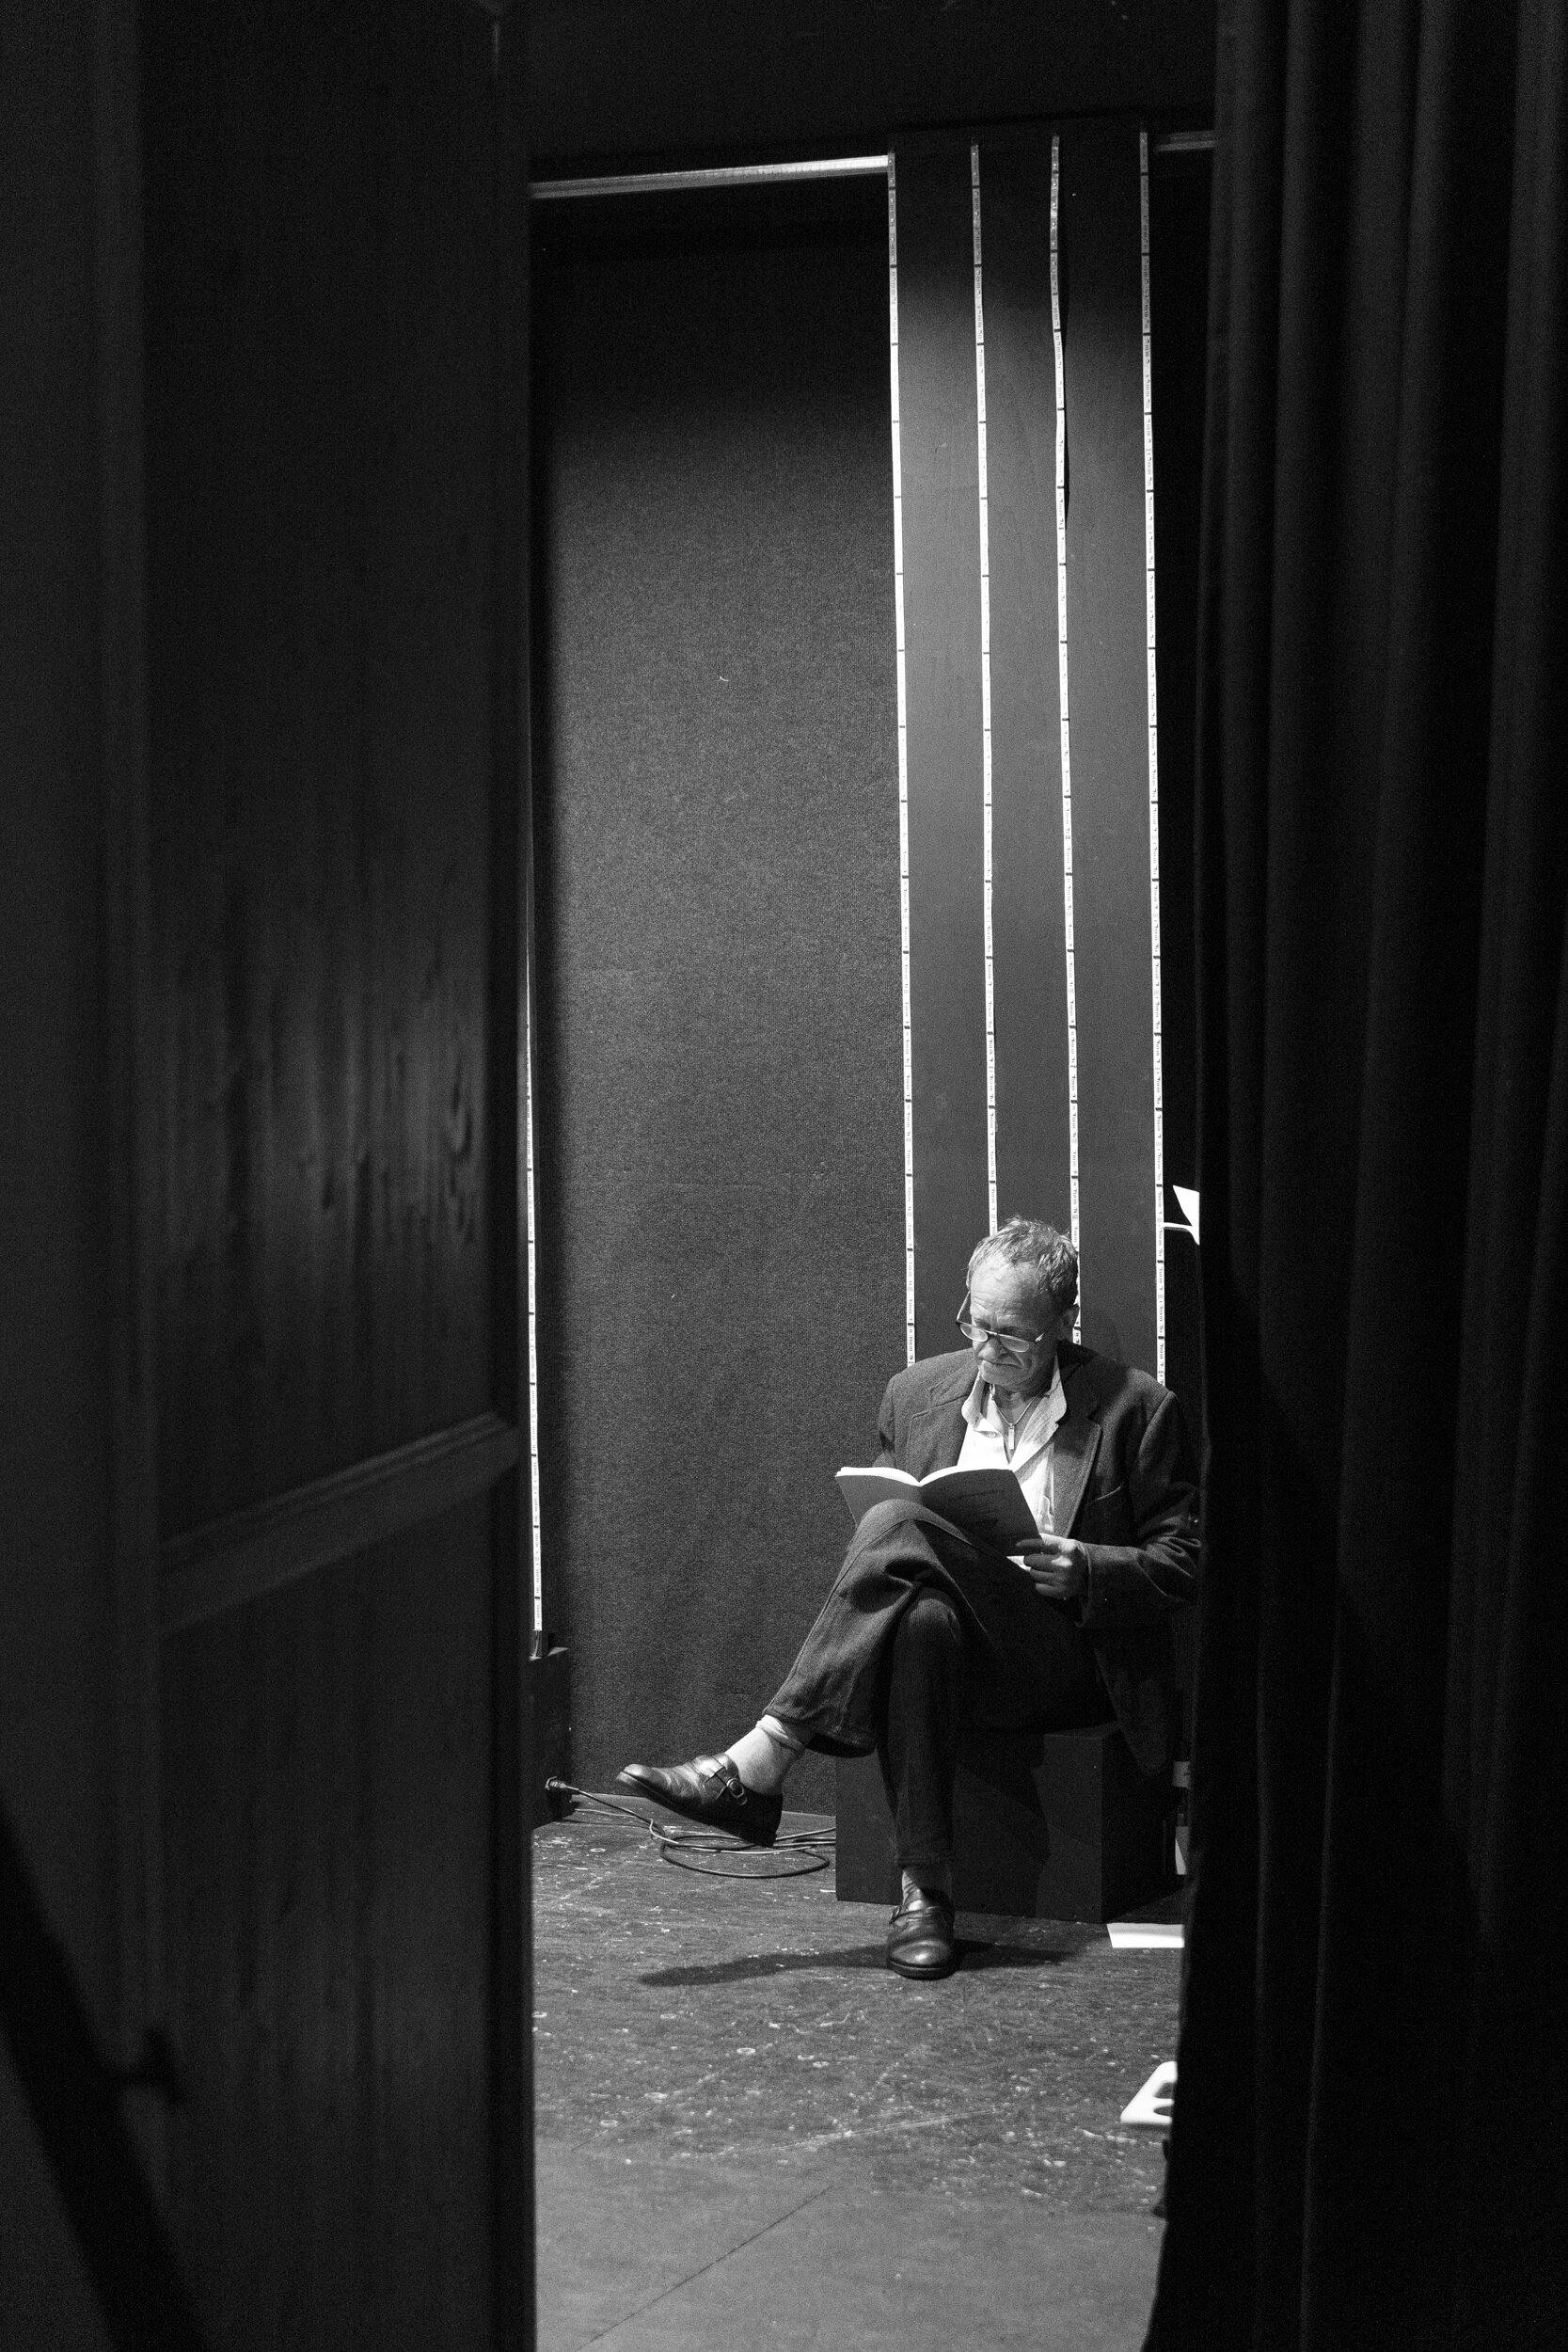 One of the actors at the local amateur dramatics society just catching up on his lines during a rehearsal.